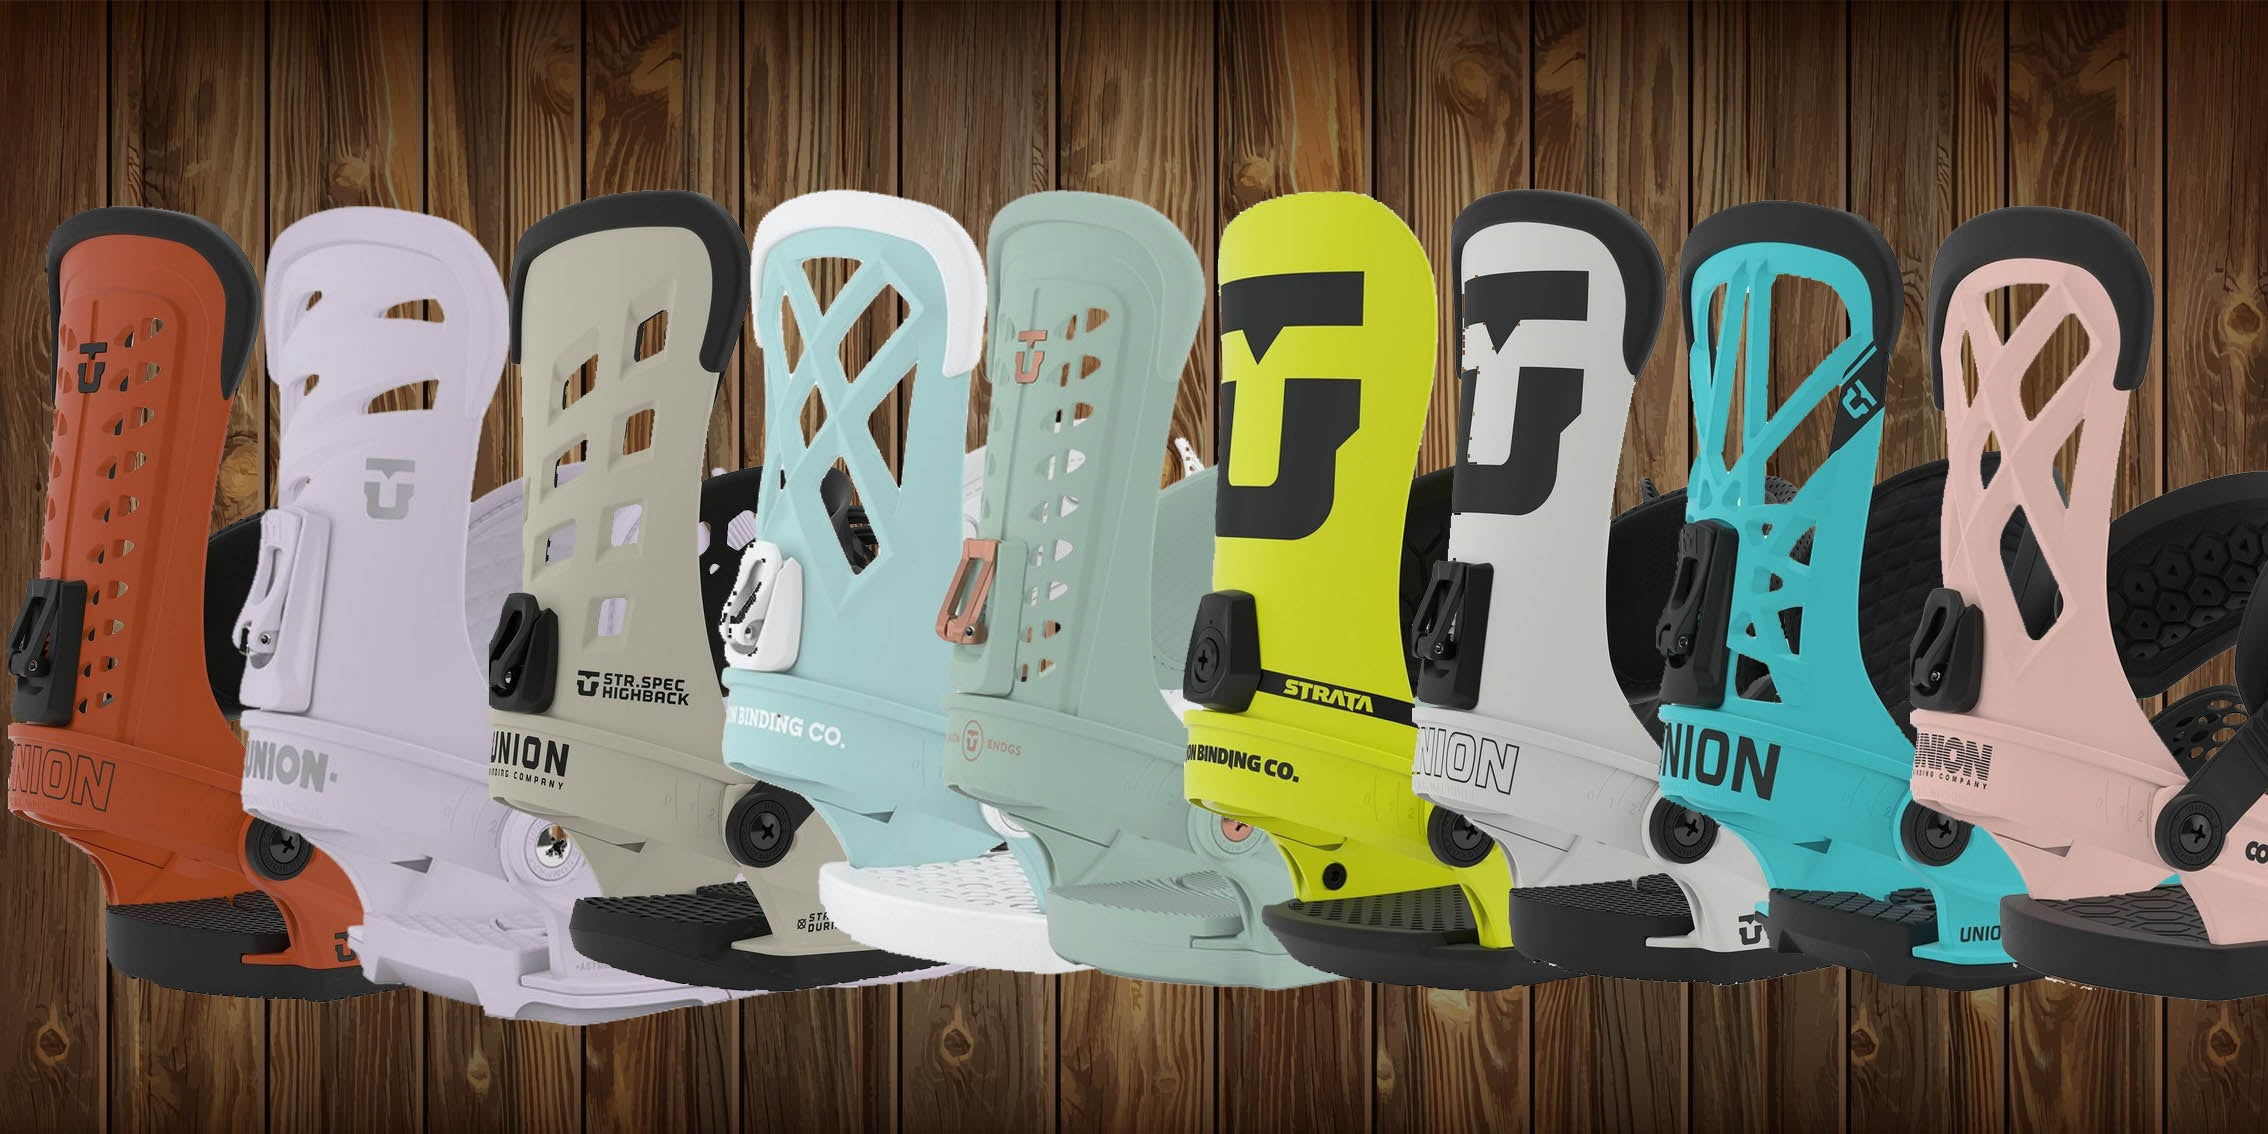 2020 Union Bindings Lineup